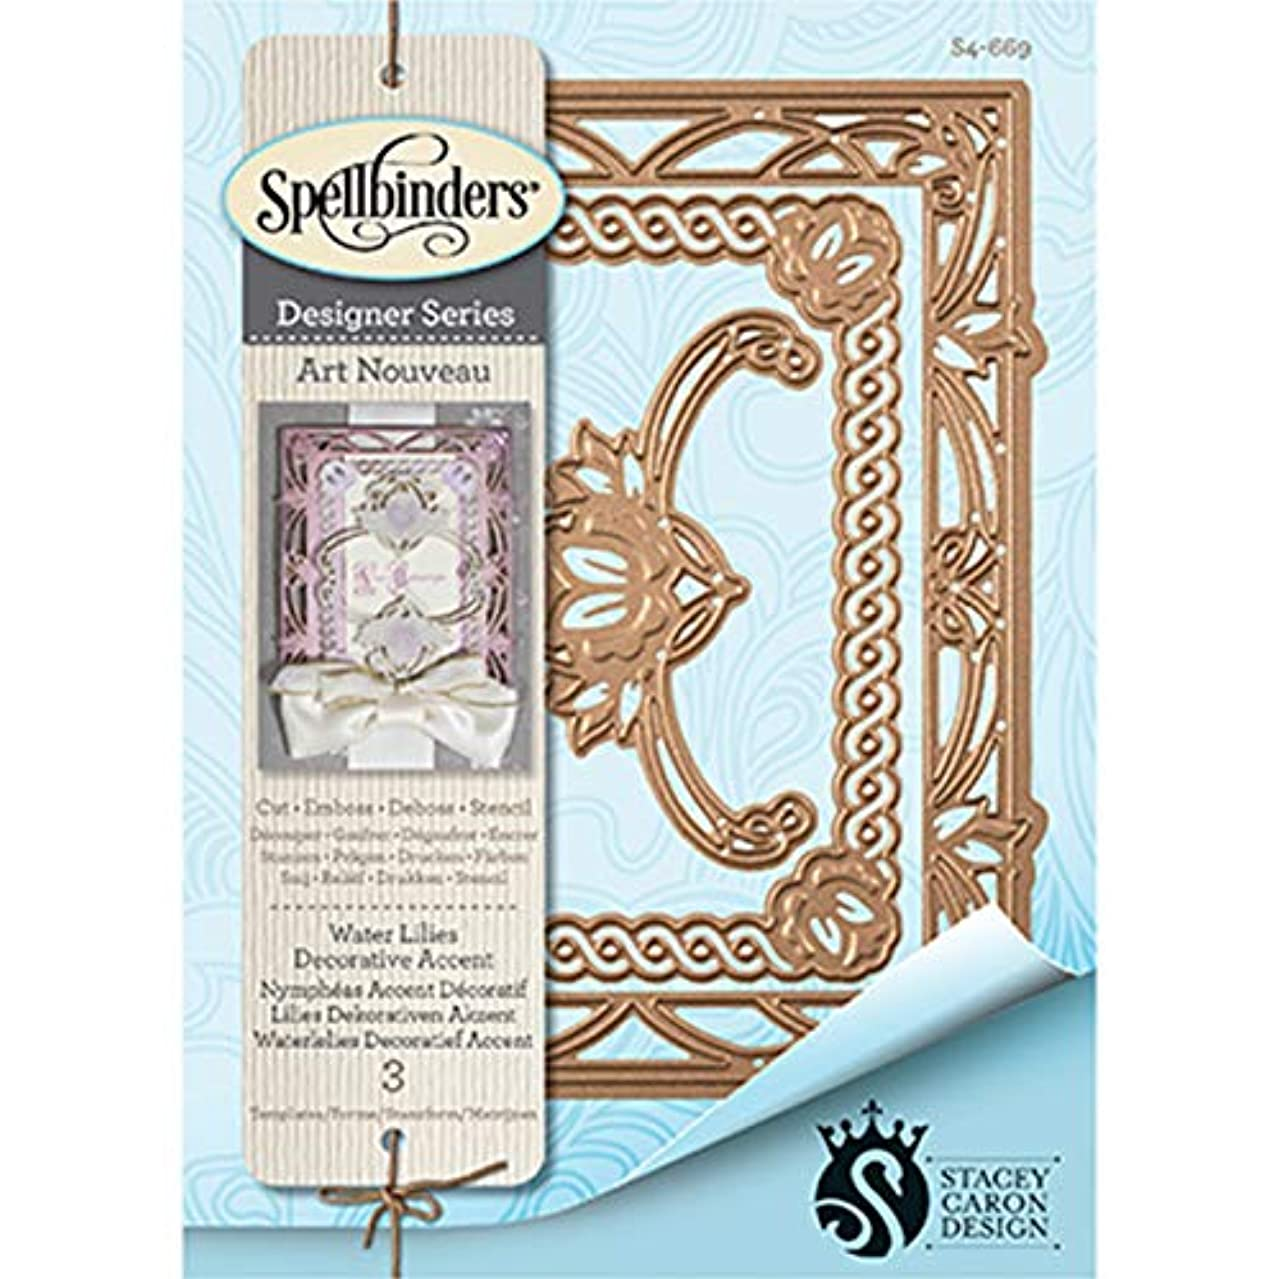 Spellbinders Waterlilies Decorative Accent Etched/Wafer Thin Dies